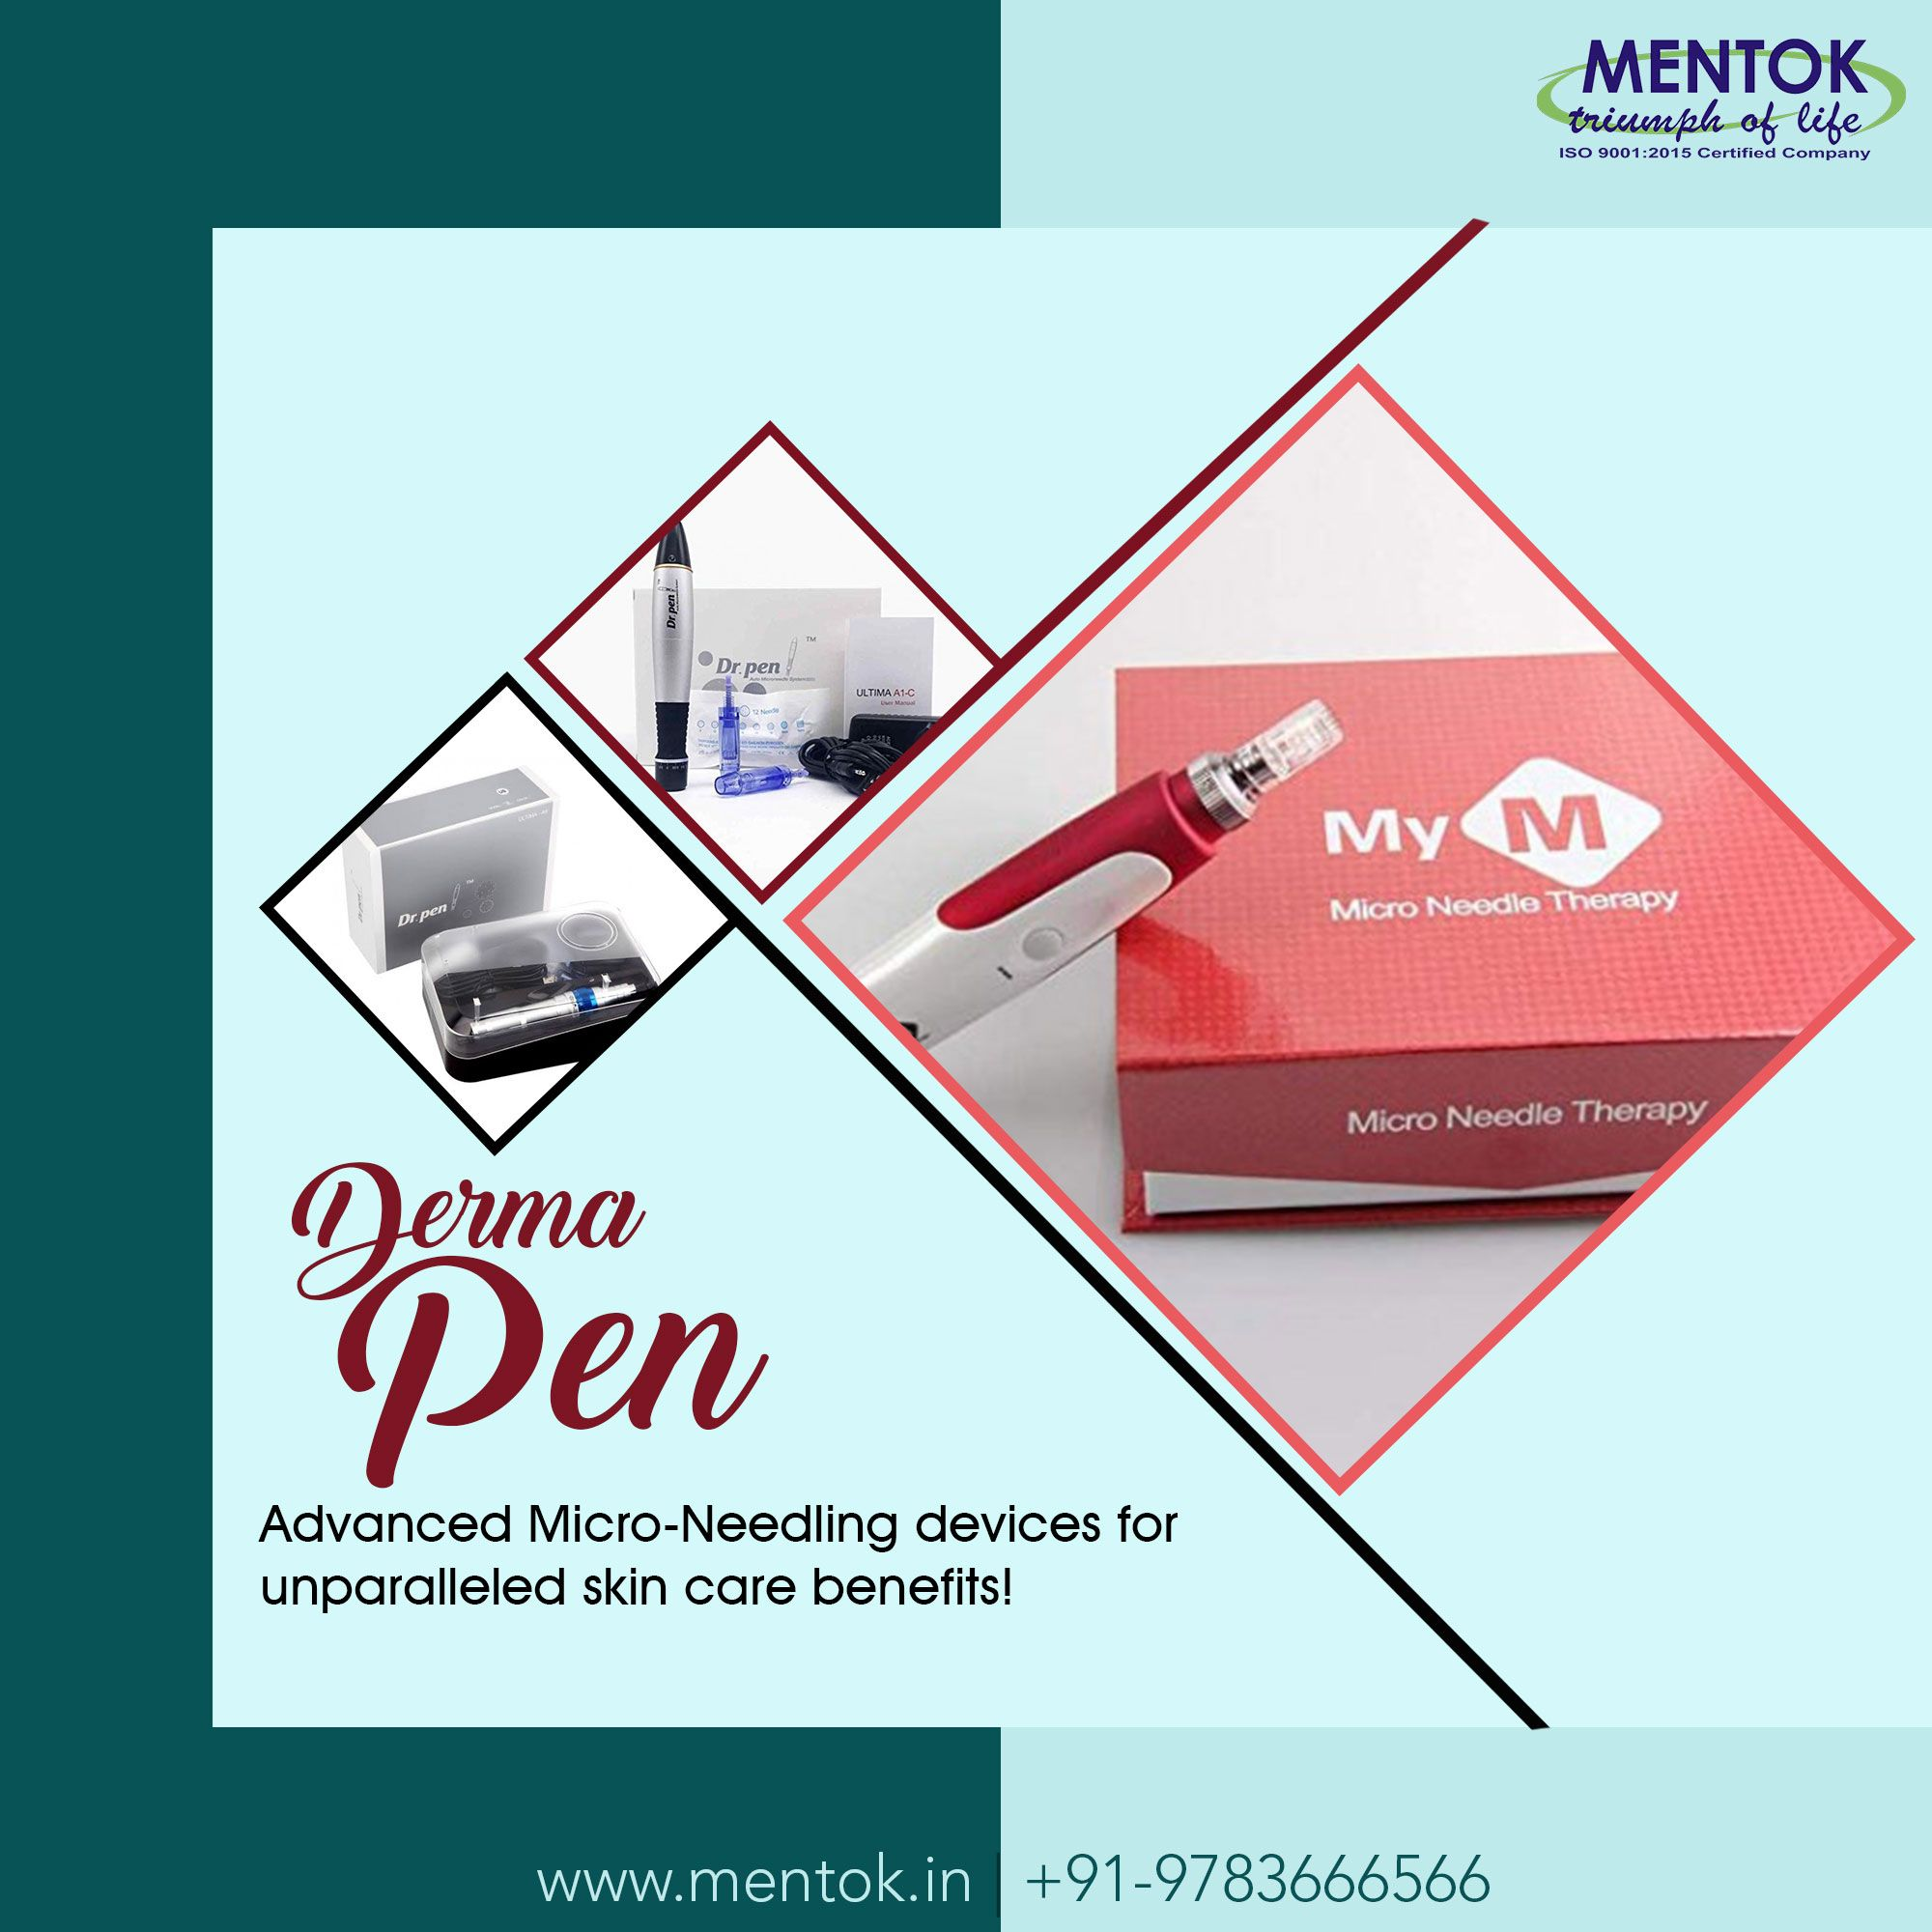 Derma Pen Advanced MicroNeedling devices for